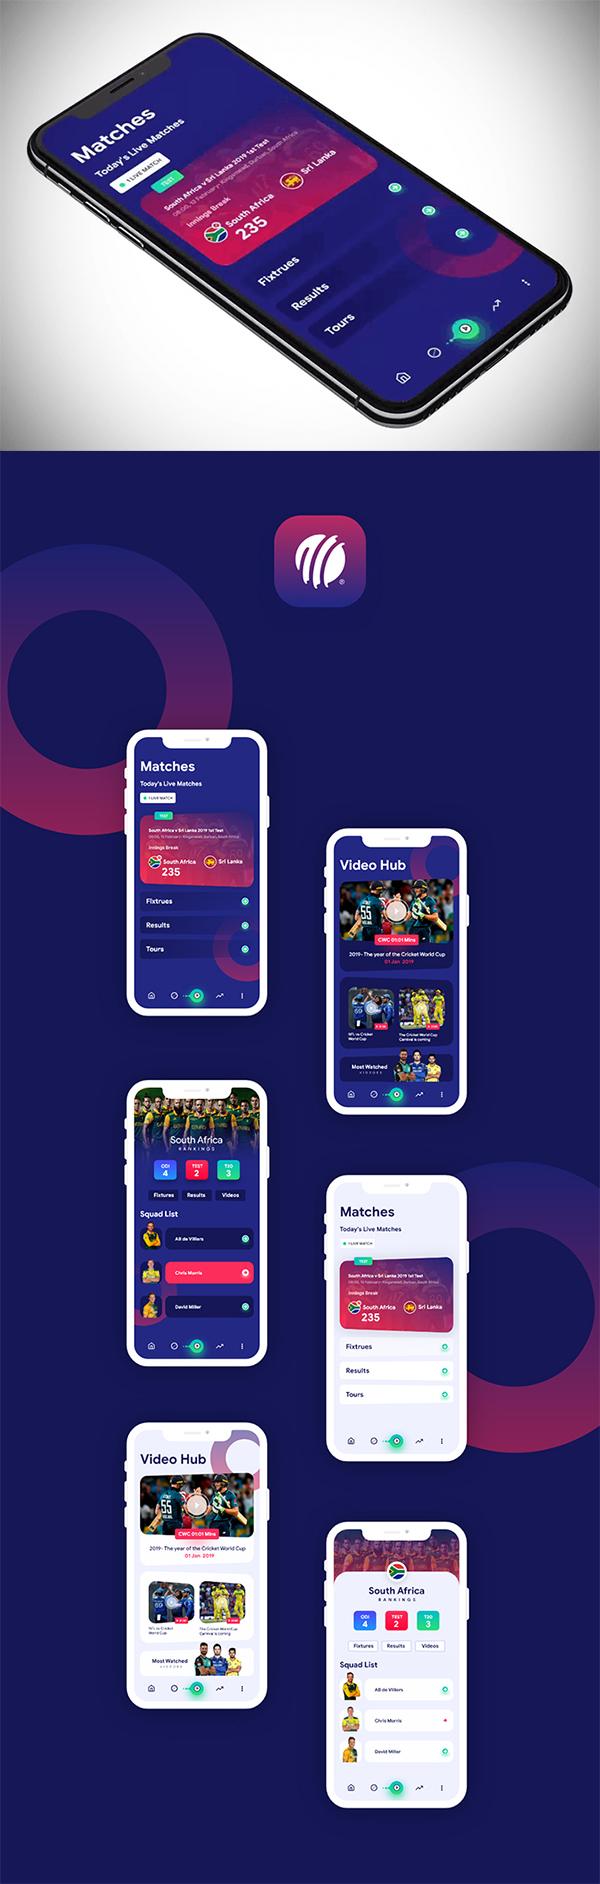 Free Download Awesome Icc Cricket App Design (2019)